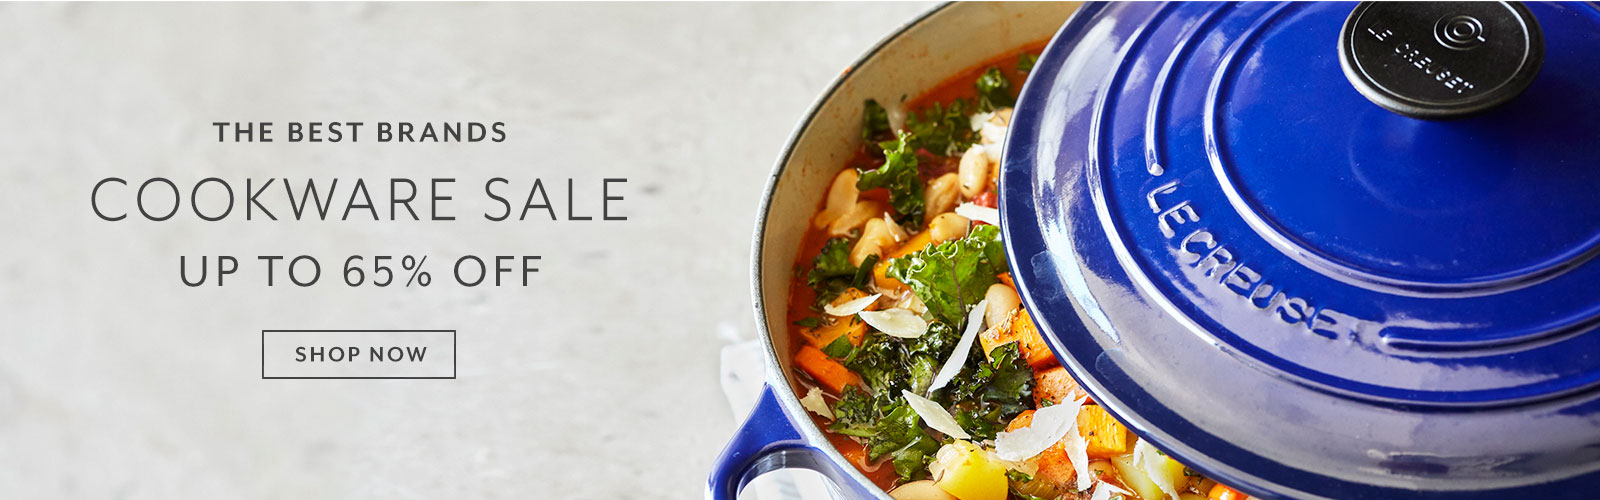 Cookware Sale up to 65% off. Shop now.